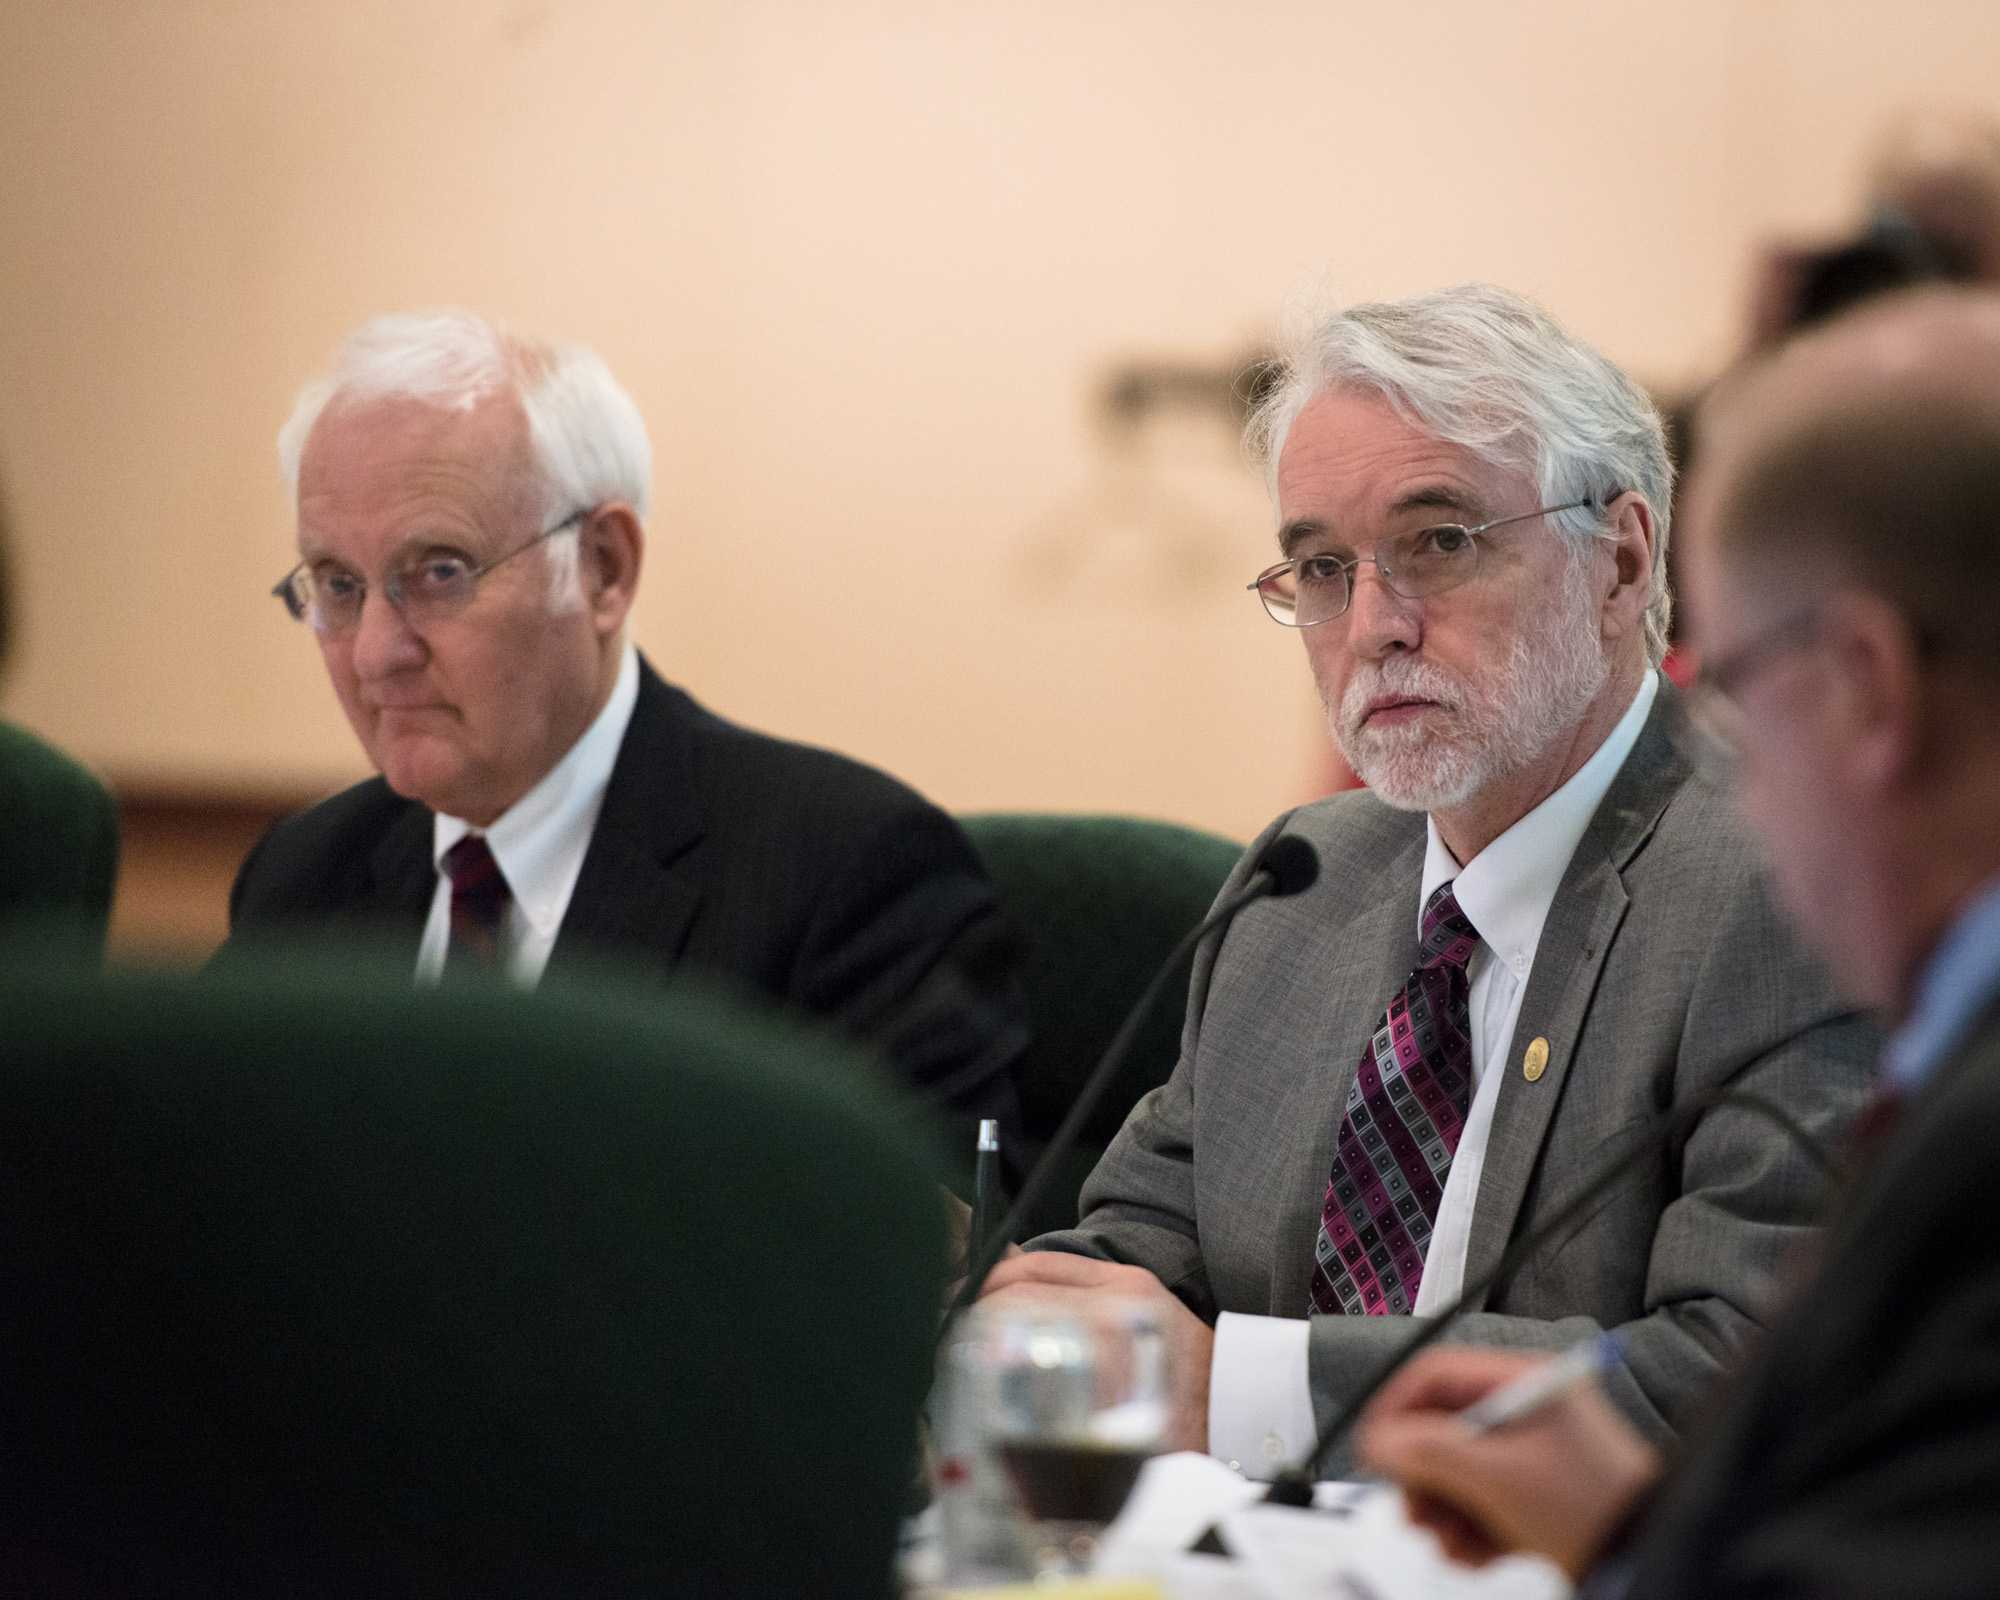 The Board of Trustees approved a $100,000 bonus for University president Timothy L. Killeen at its meeting on Sept. 8.